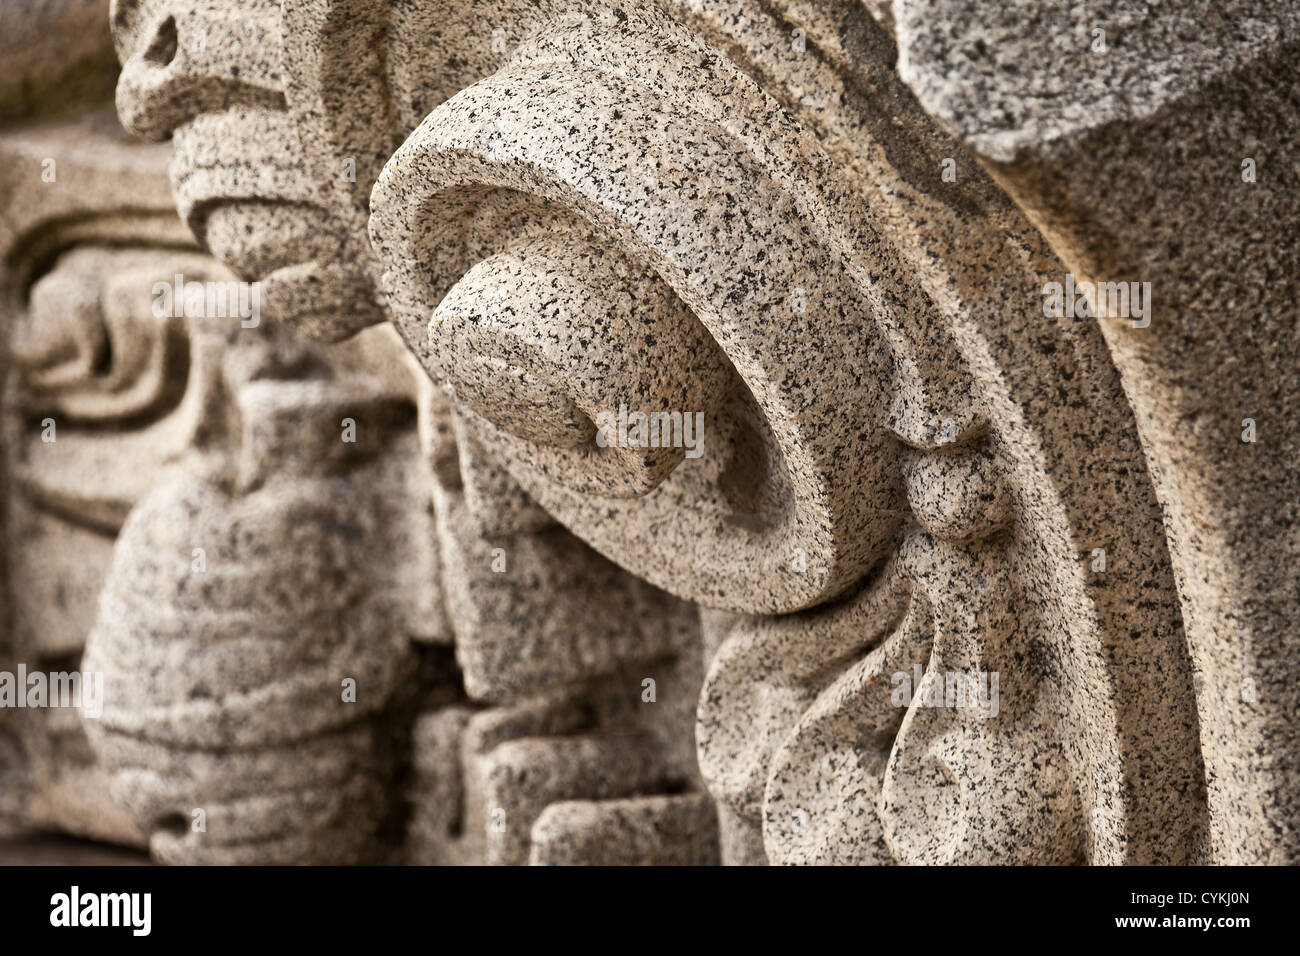 Stone carving from granite rock facade of old historic